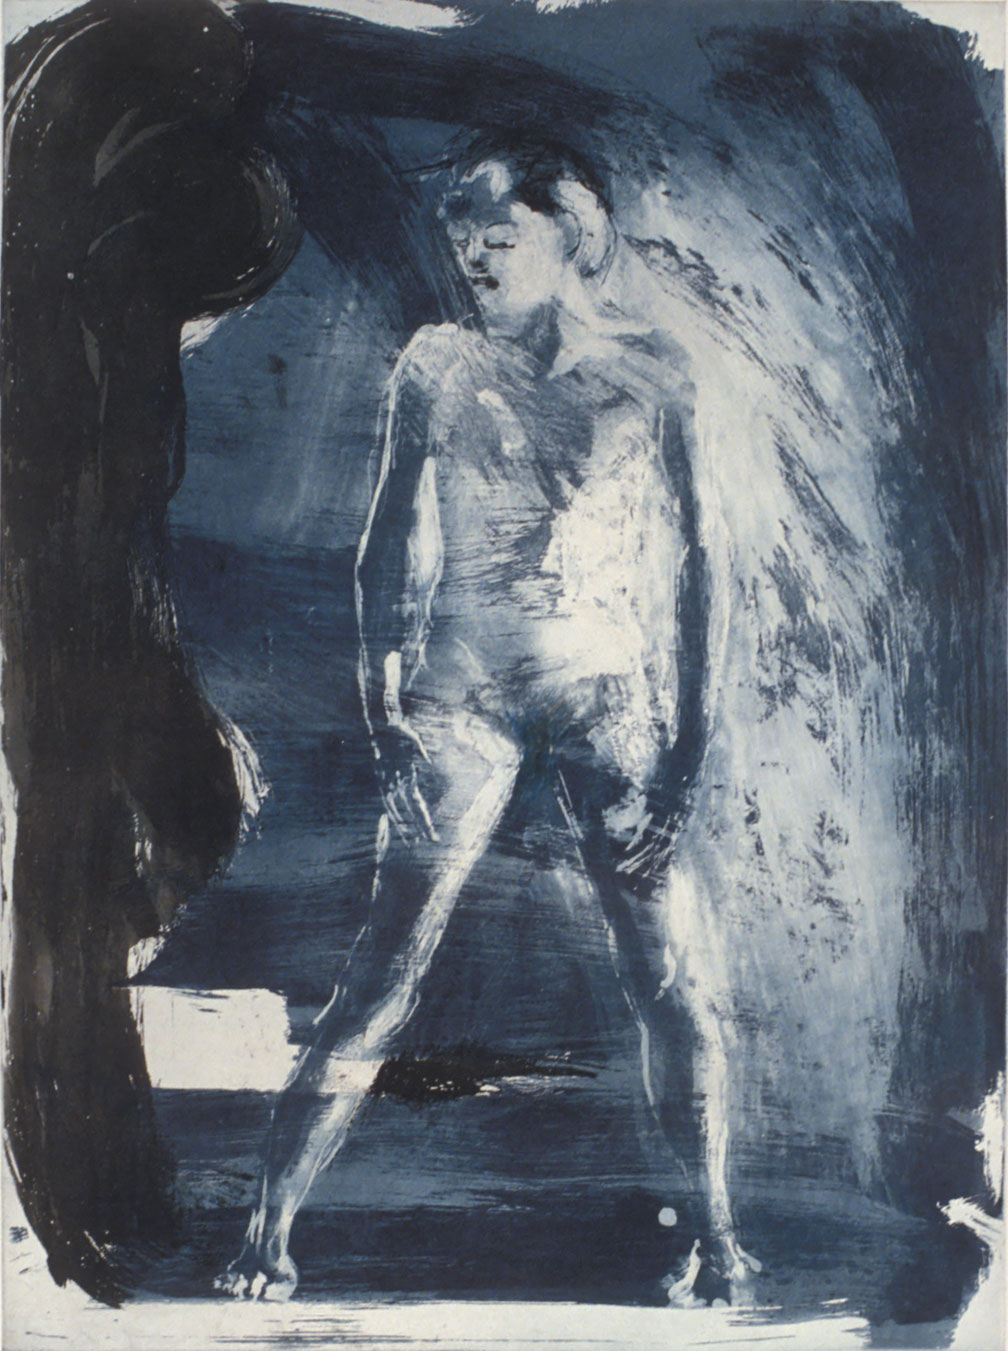 Floating Islands George Platt Lynes Figure, 1985. Etching on paper, study proof, 30 x 21 inches